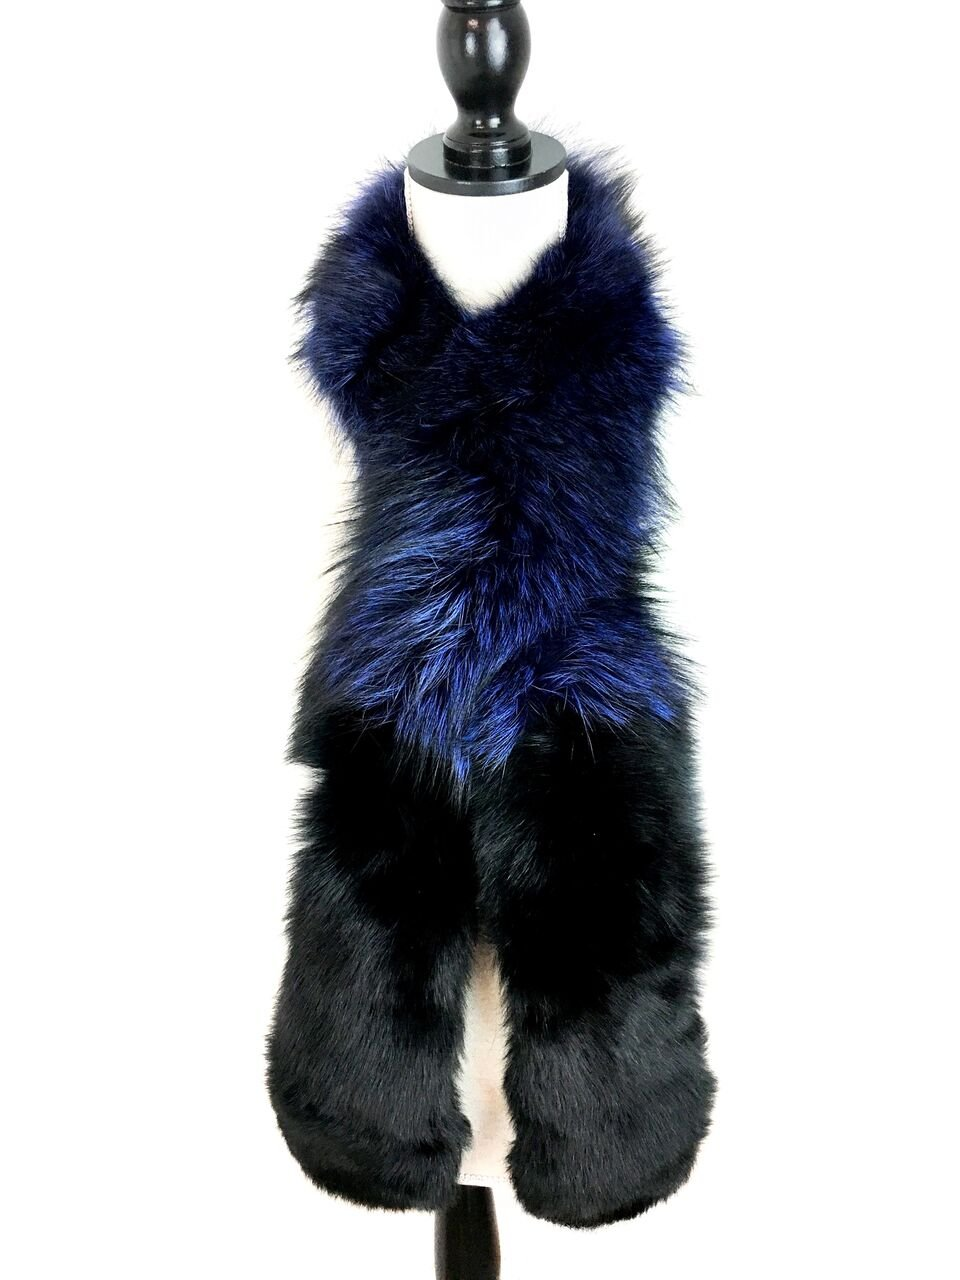 Surell Dyed Fox Fur Scarf - Womens Luxury Neck Wrap - Perfect Winter Fashion Gift (Blue) by surell (Image #2)